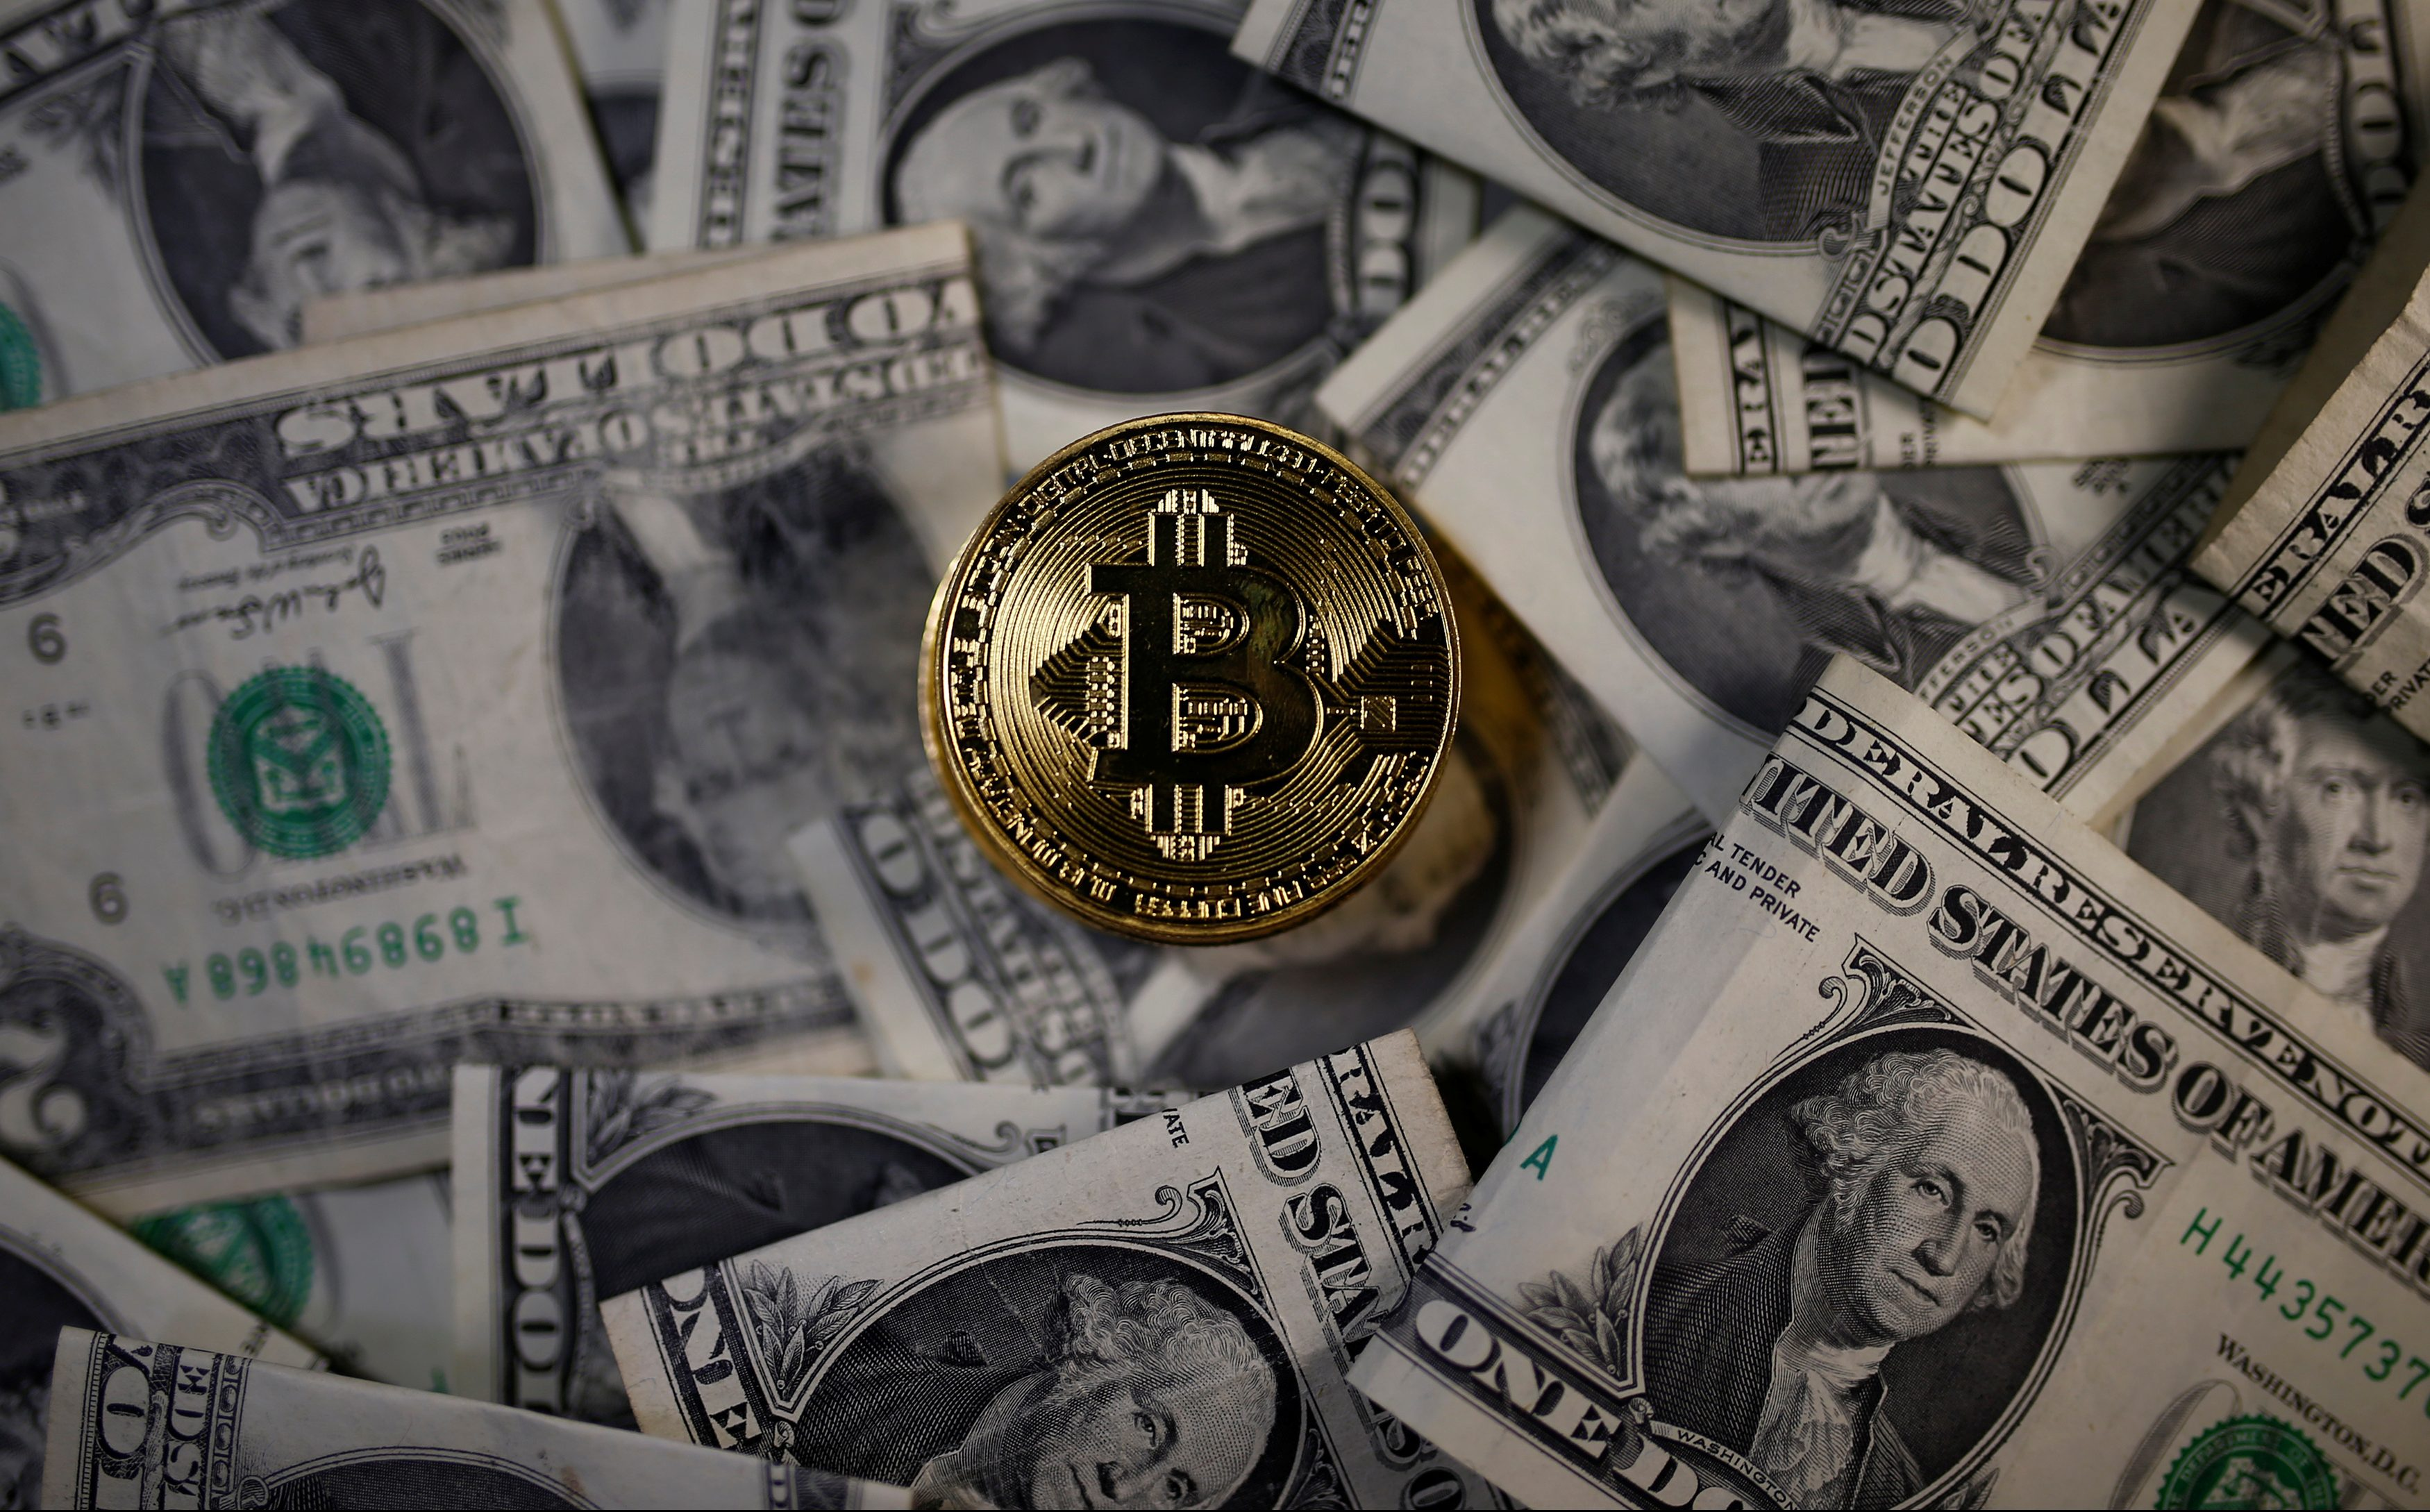 Bitcoin cash bch price could lead to bitcoin death spiral quartz a bitcoin virtual currency coin placed on dollar banknotes is seen in this illustration ccuart Images